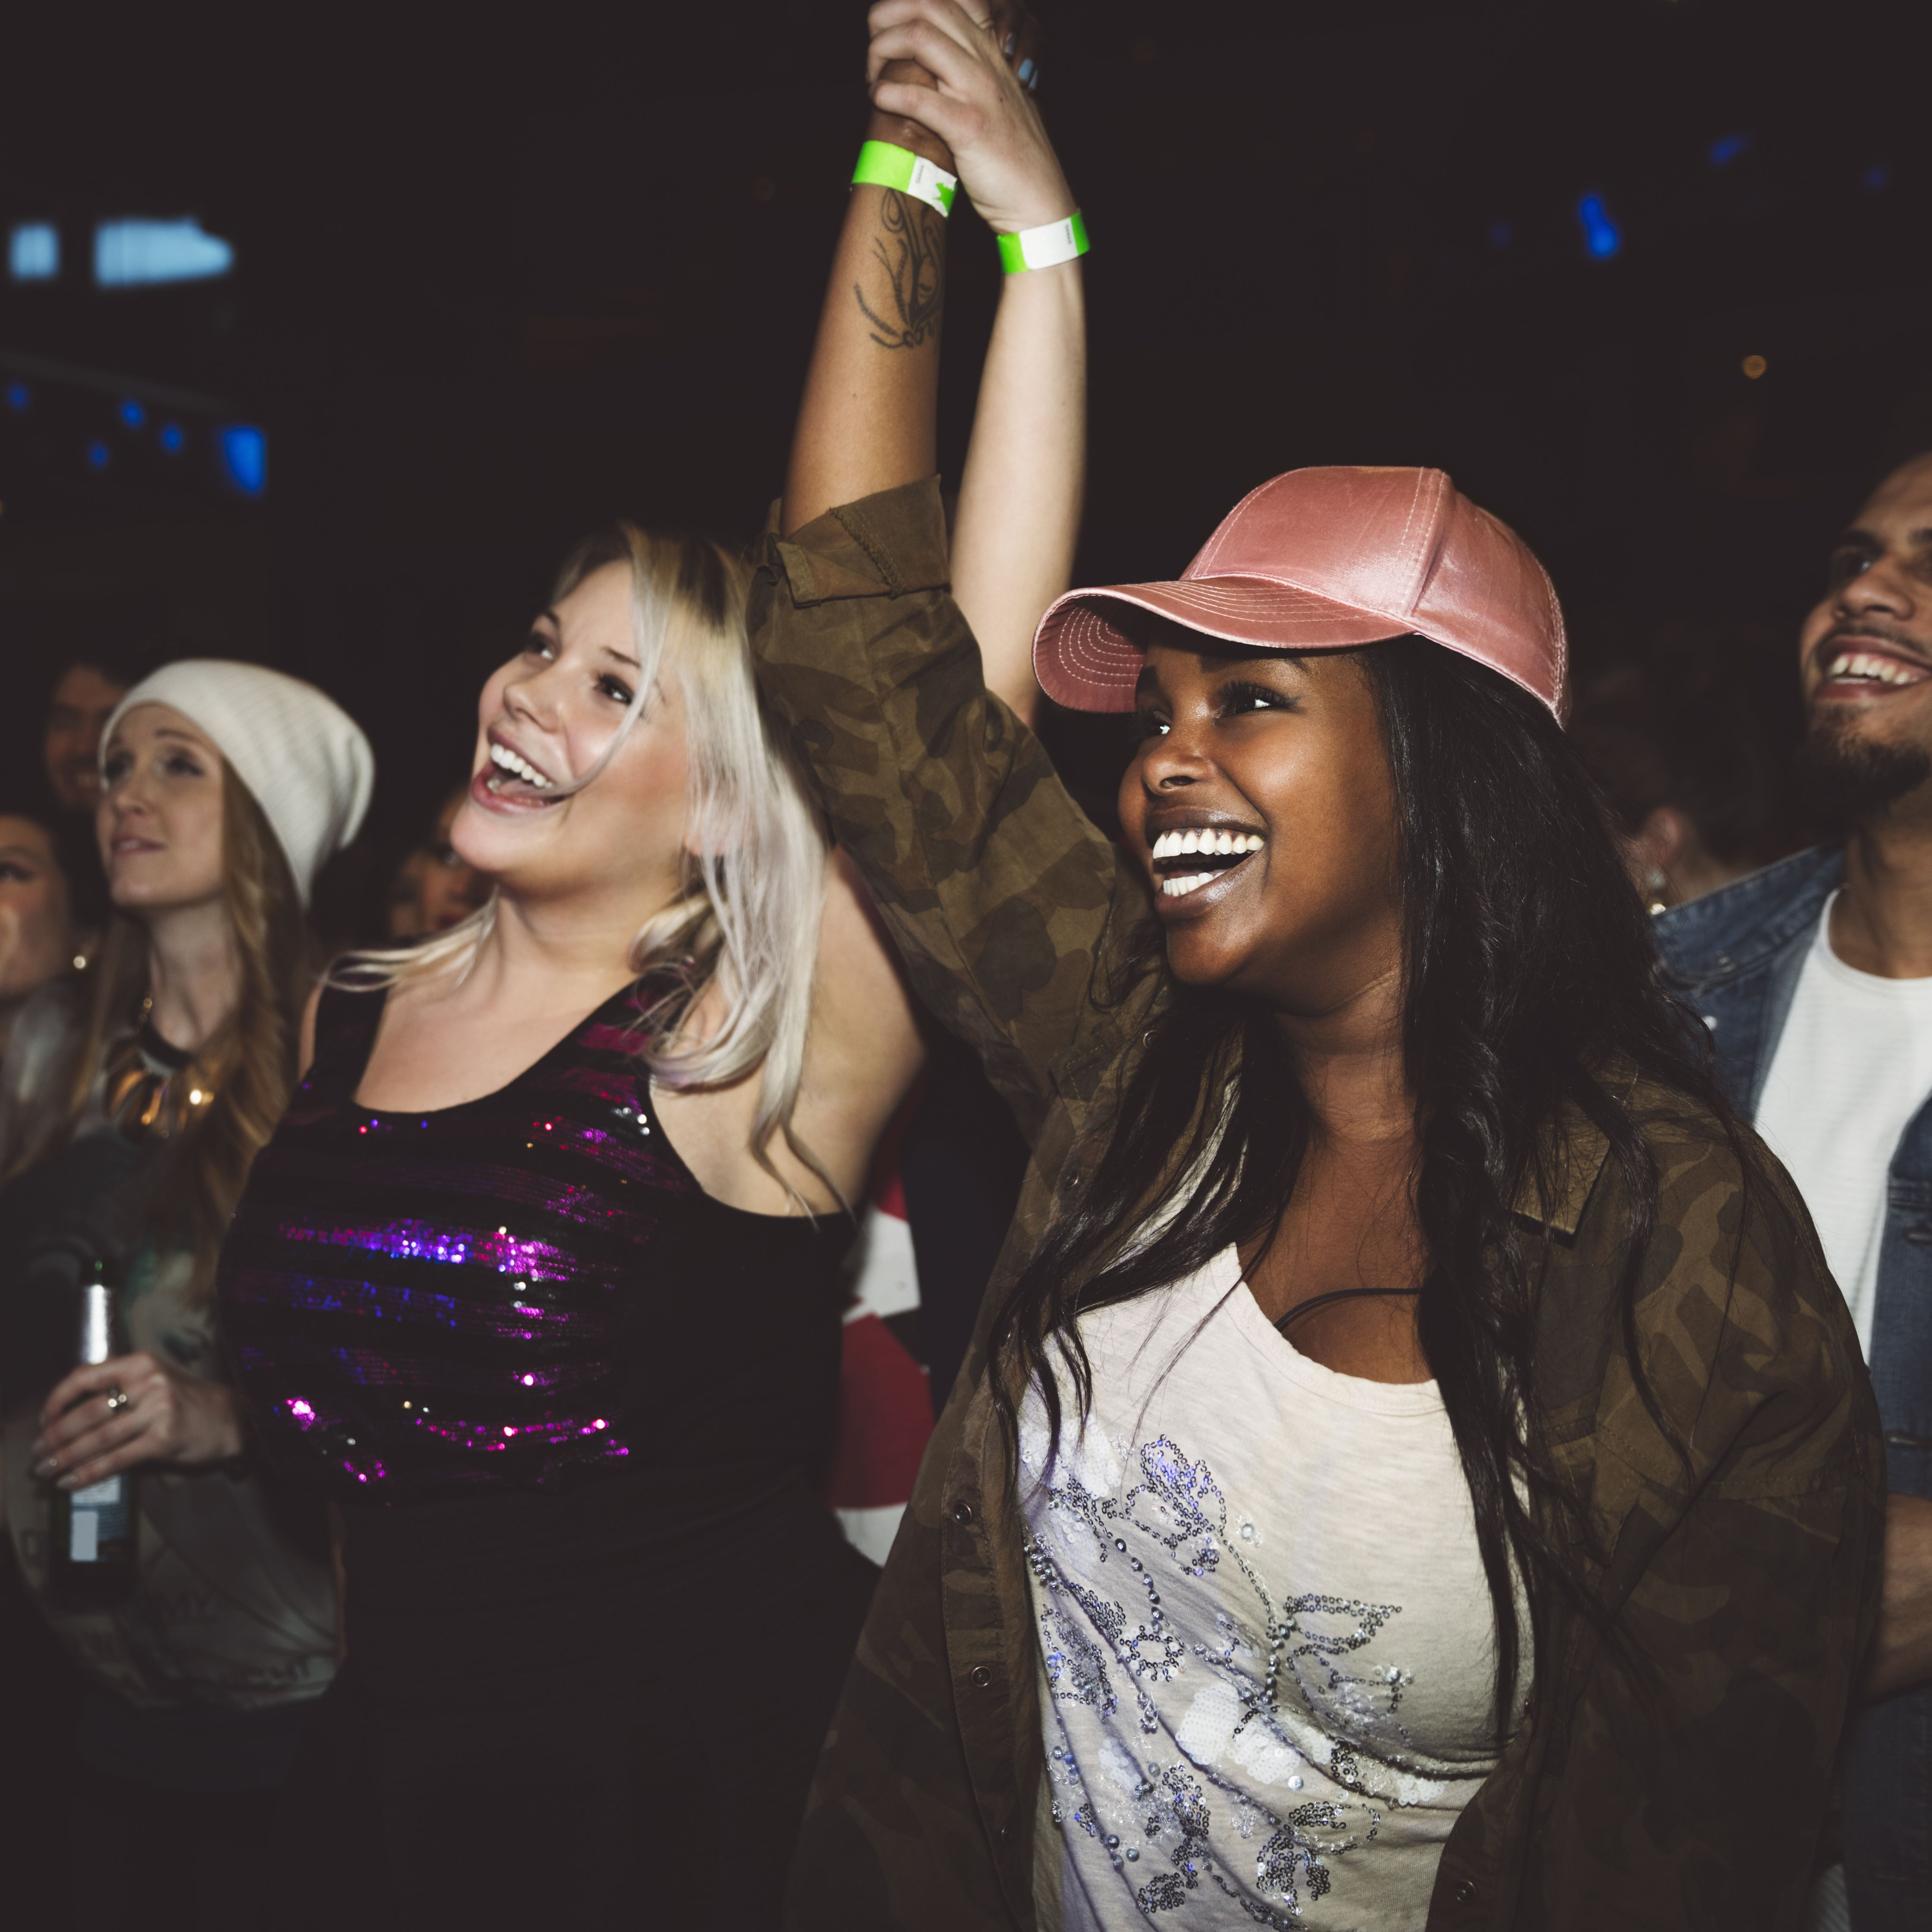 Ways the Concert Guest List Can Help Promote an Event